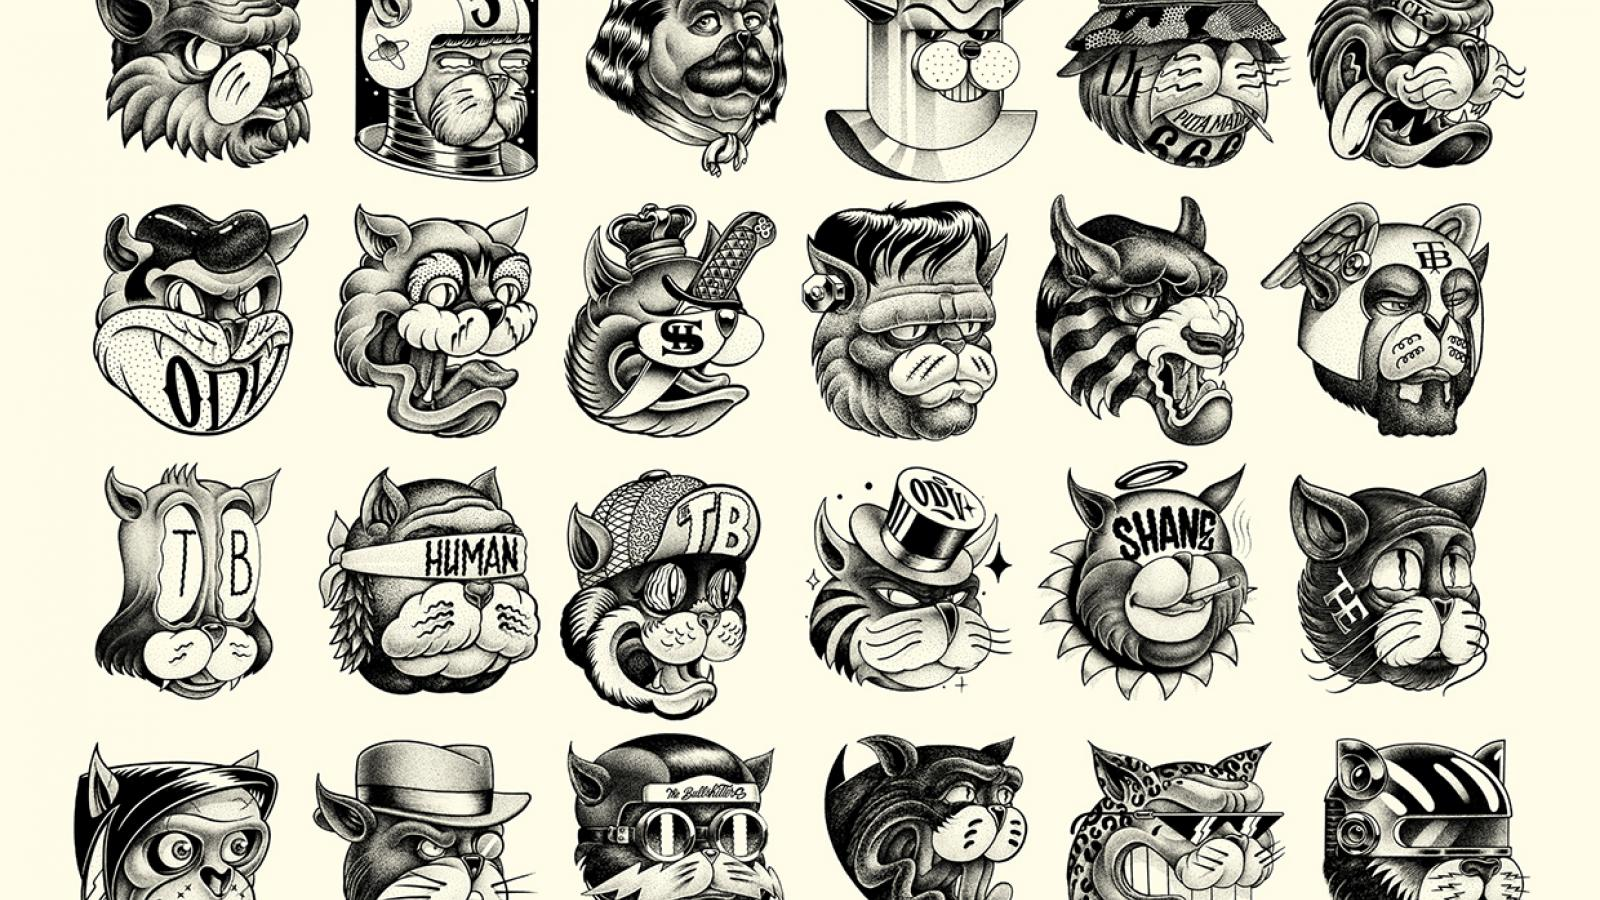 Cartoon Characters by Shane